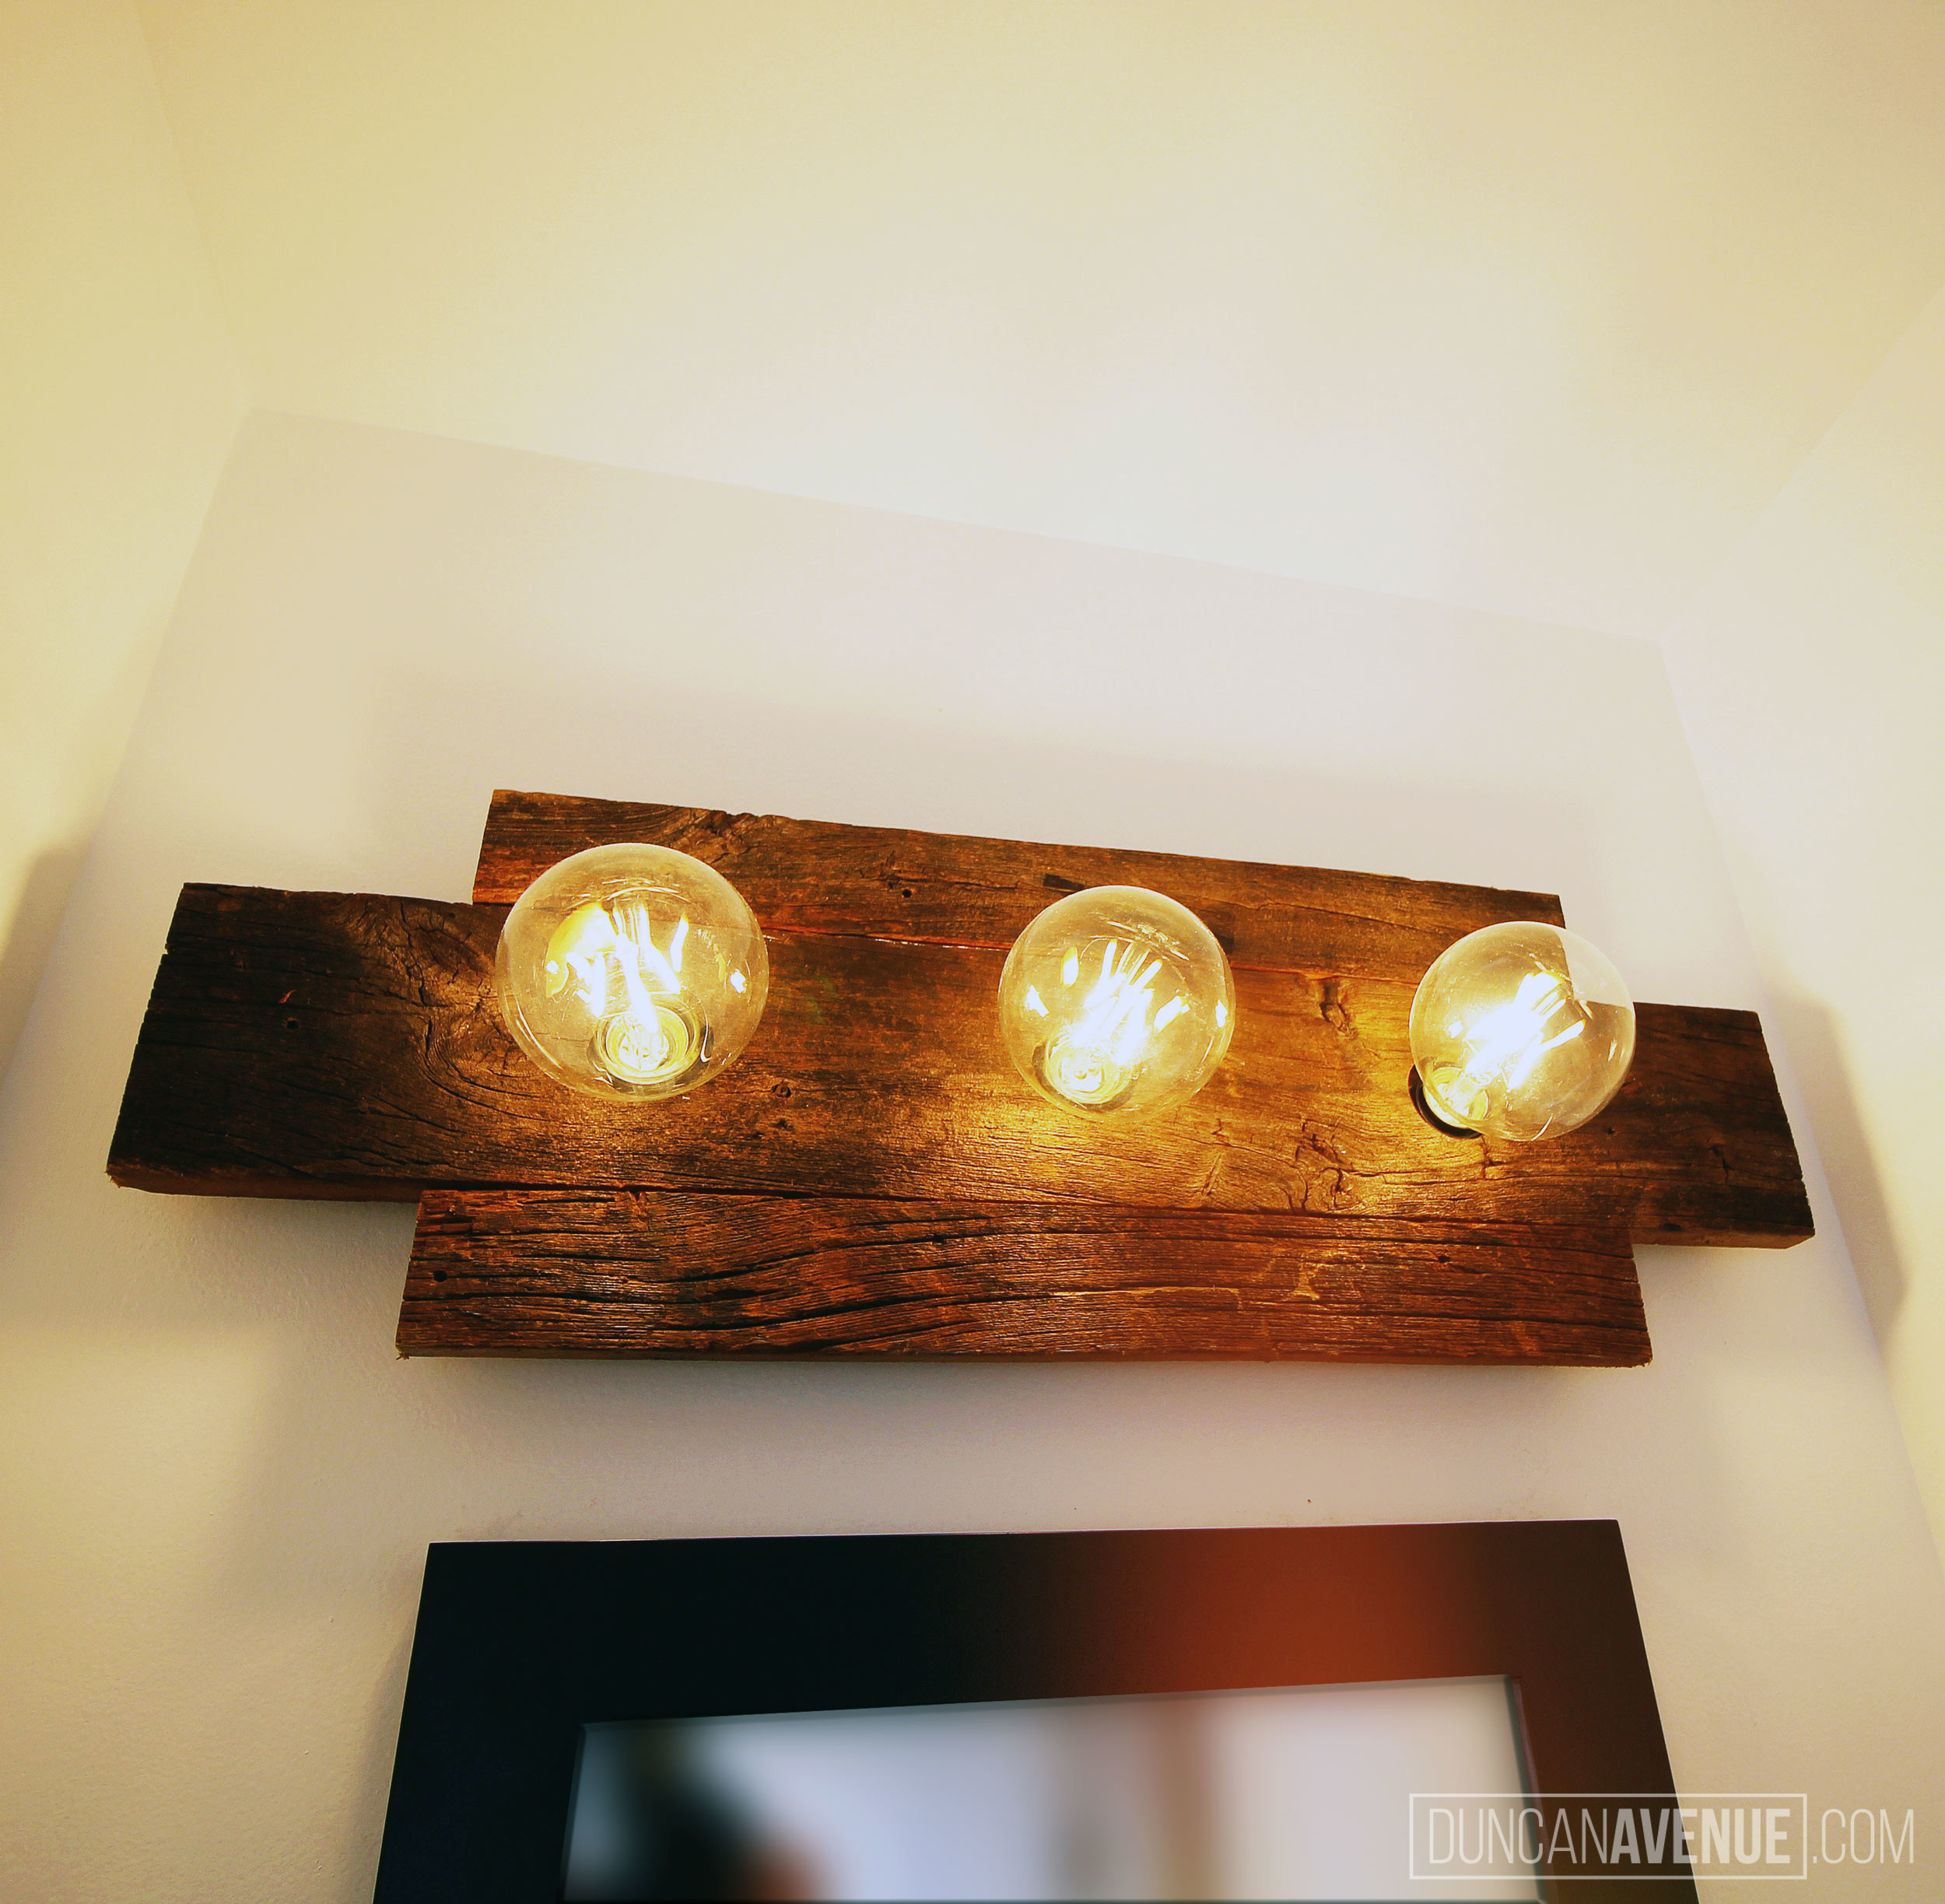 Custom light fixture design reclaimed wood by duncan avenue group hudson valley new